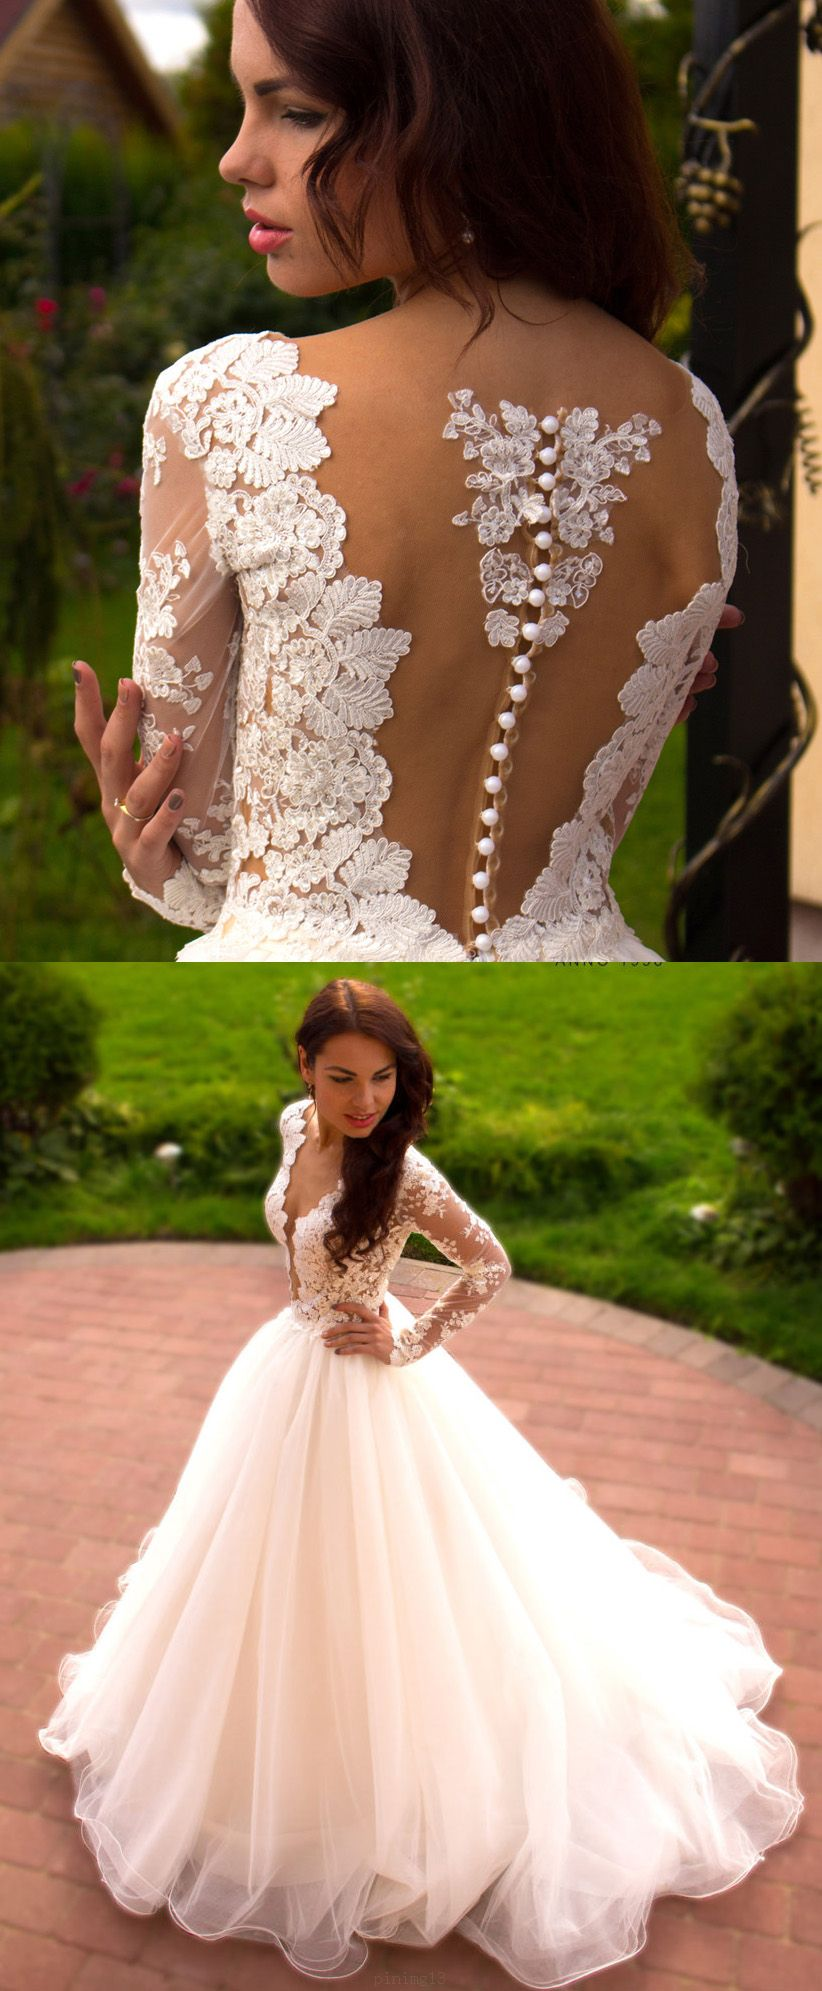 Cheap white wedding dress fancy long wedding dresses with tulle a